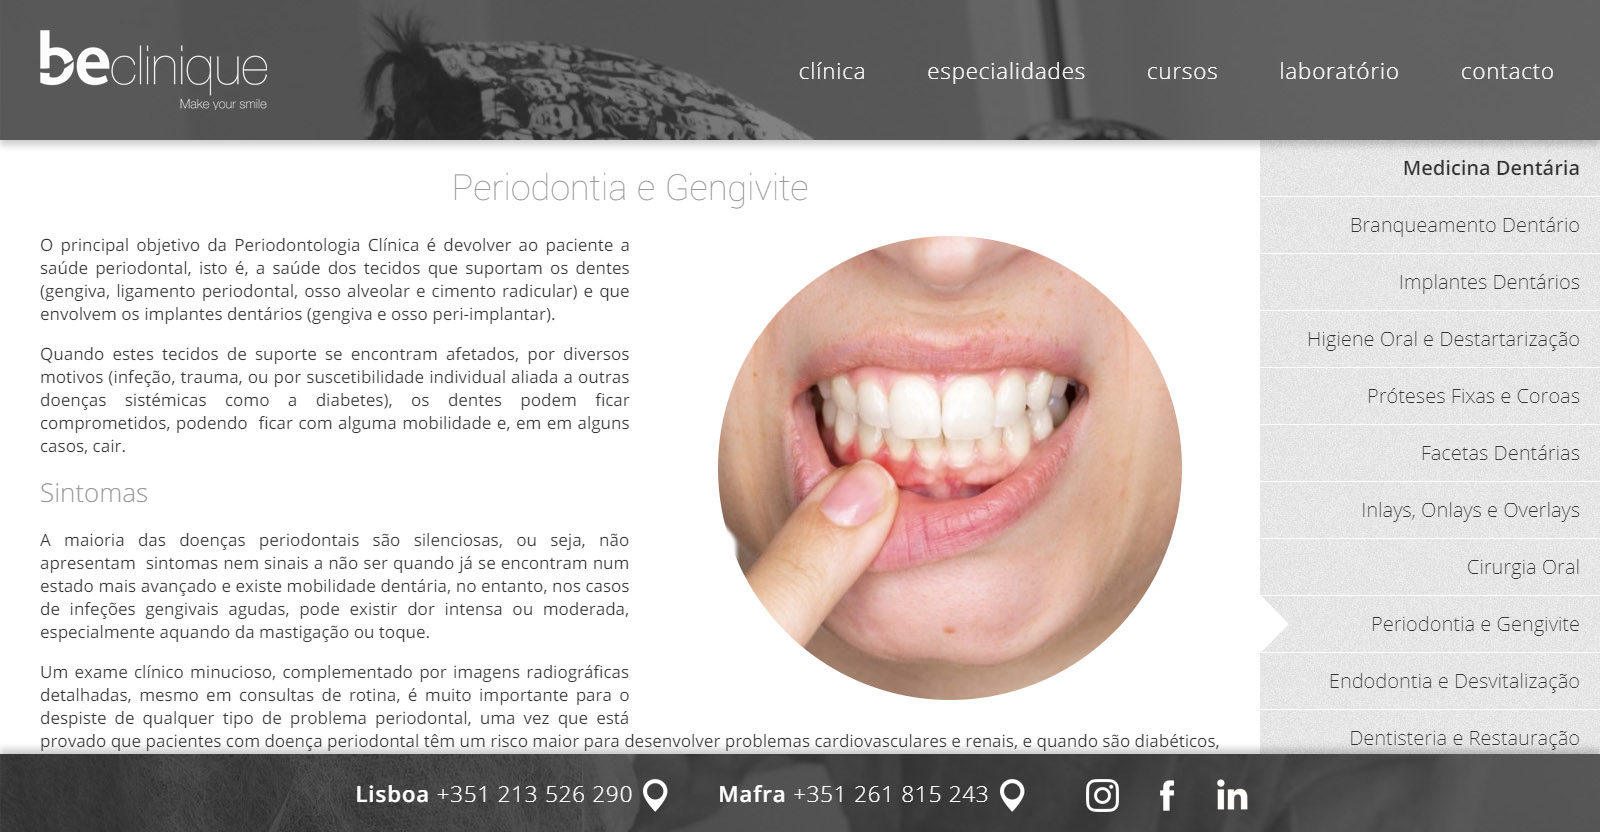 Website BeClinique